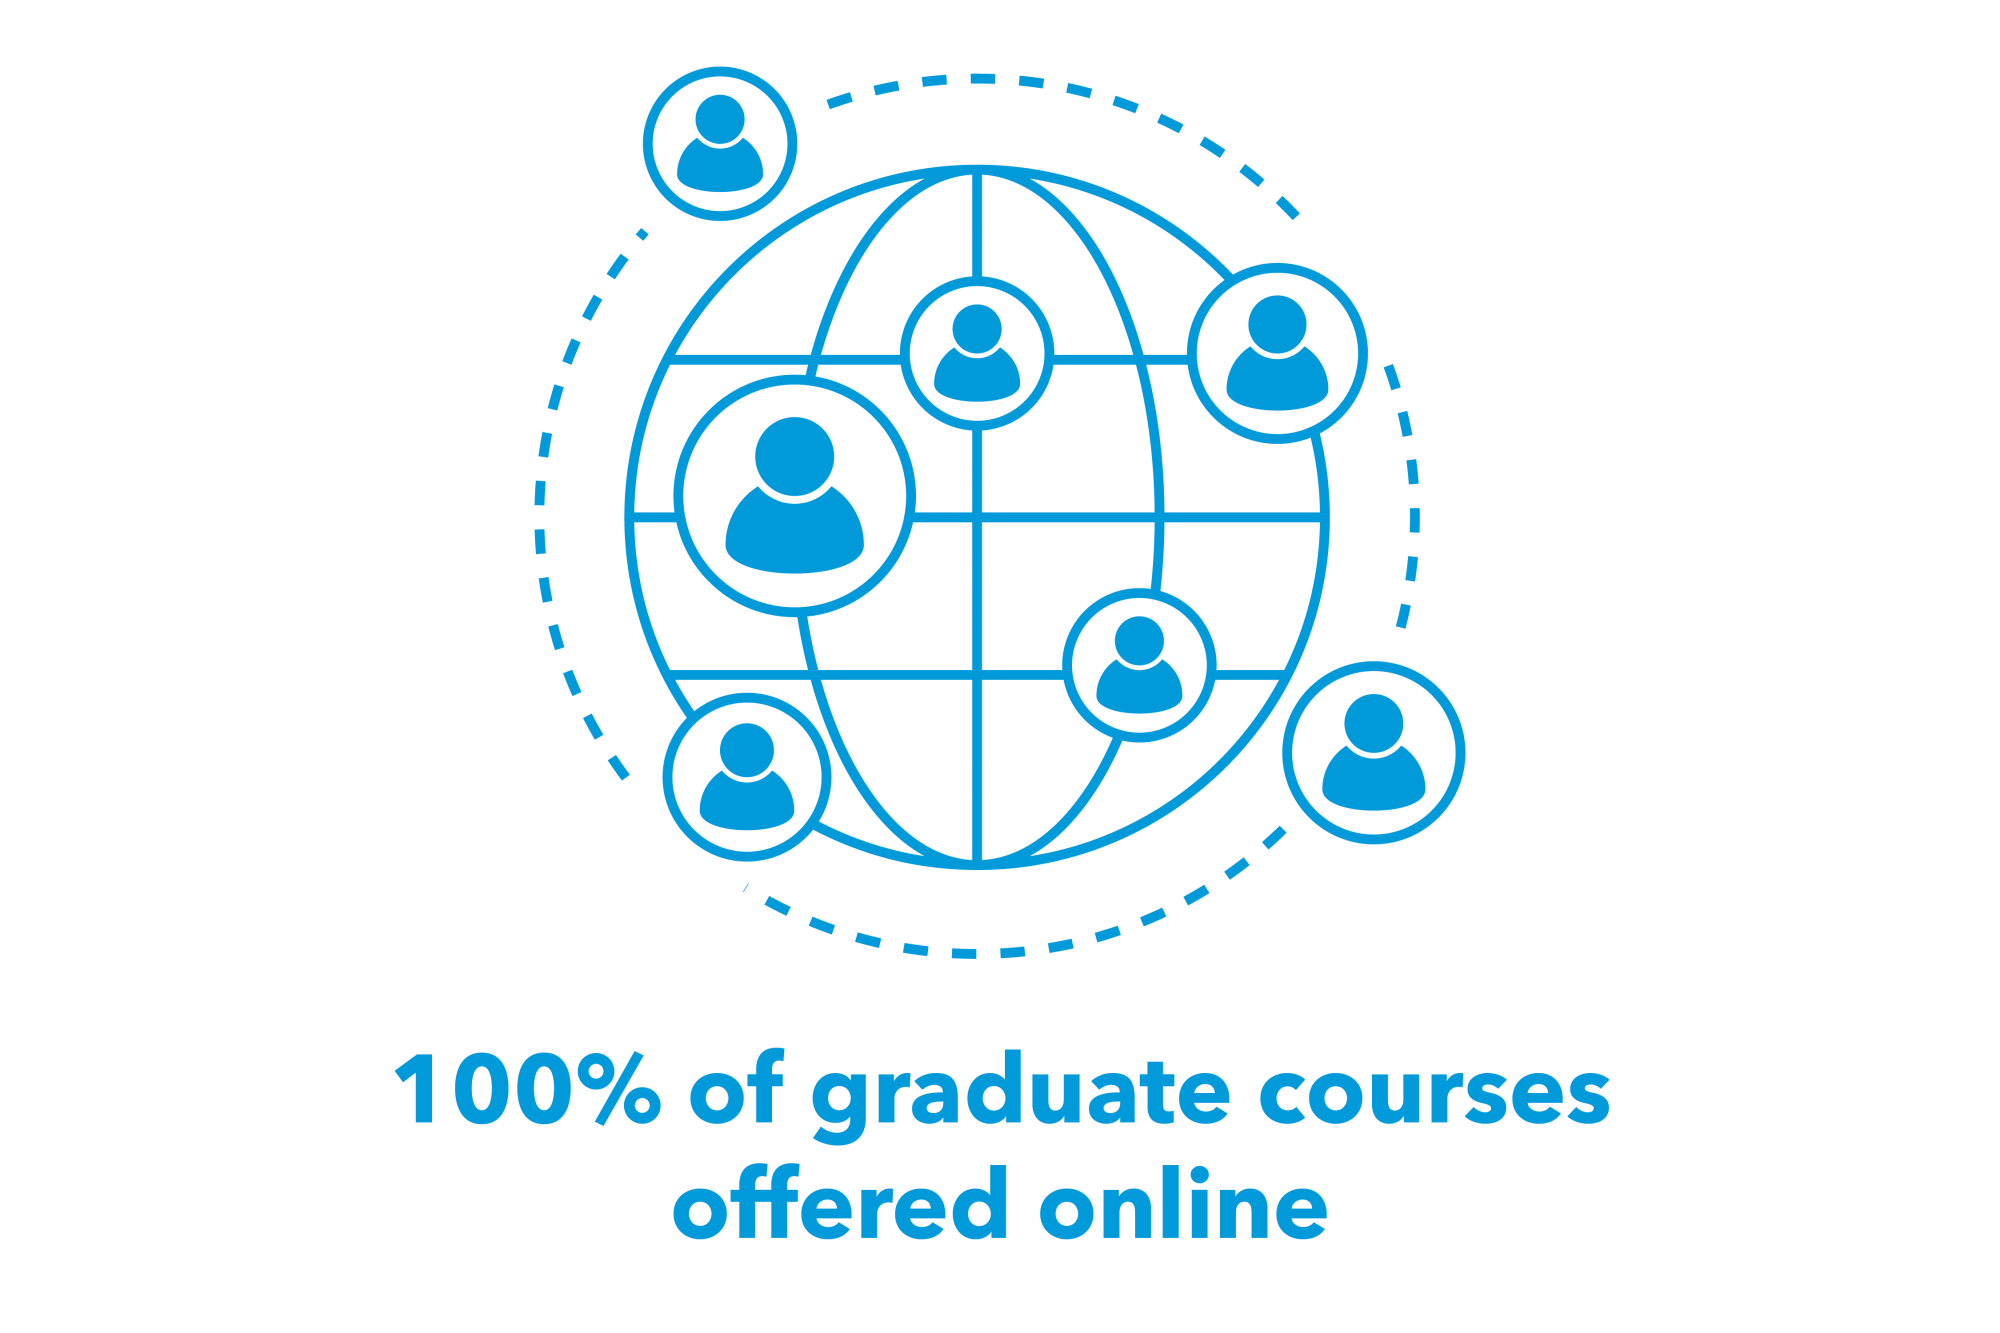 100 percent of graduate courses offered online